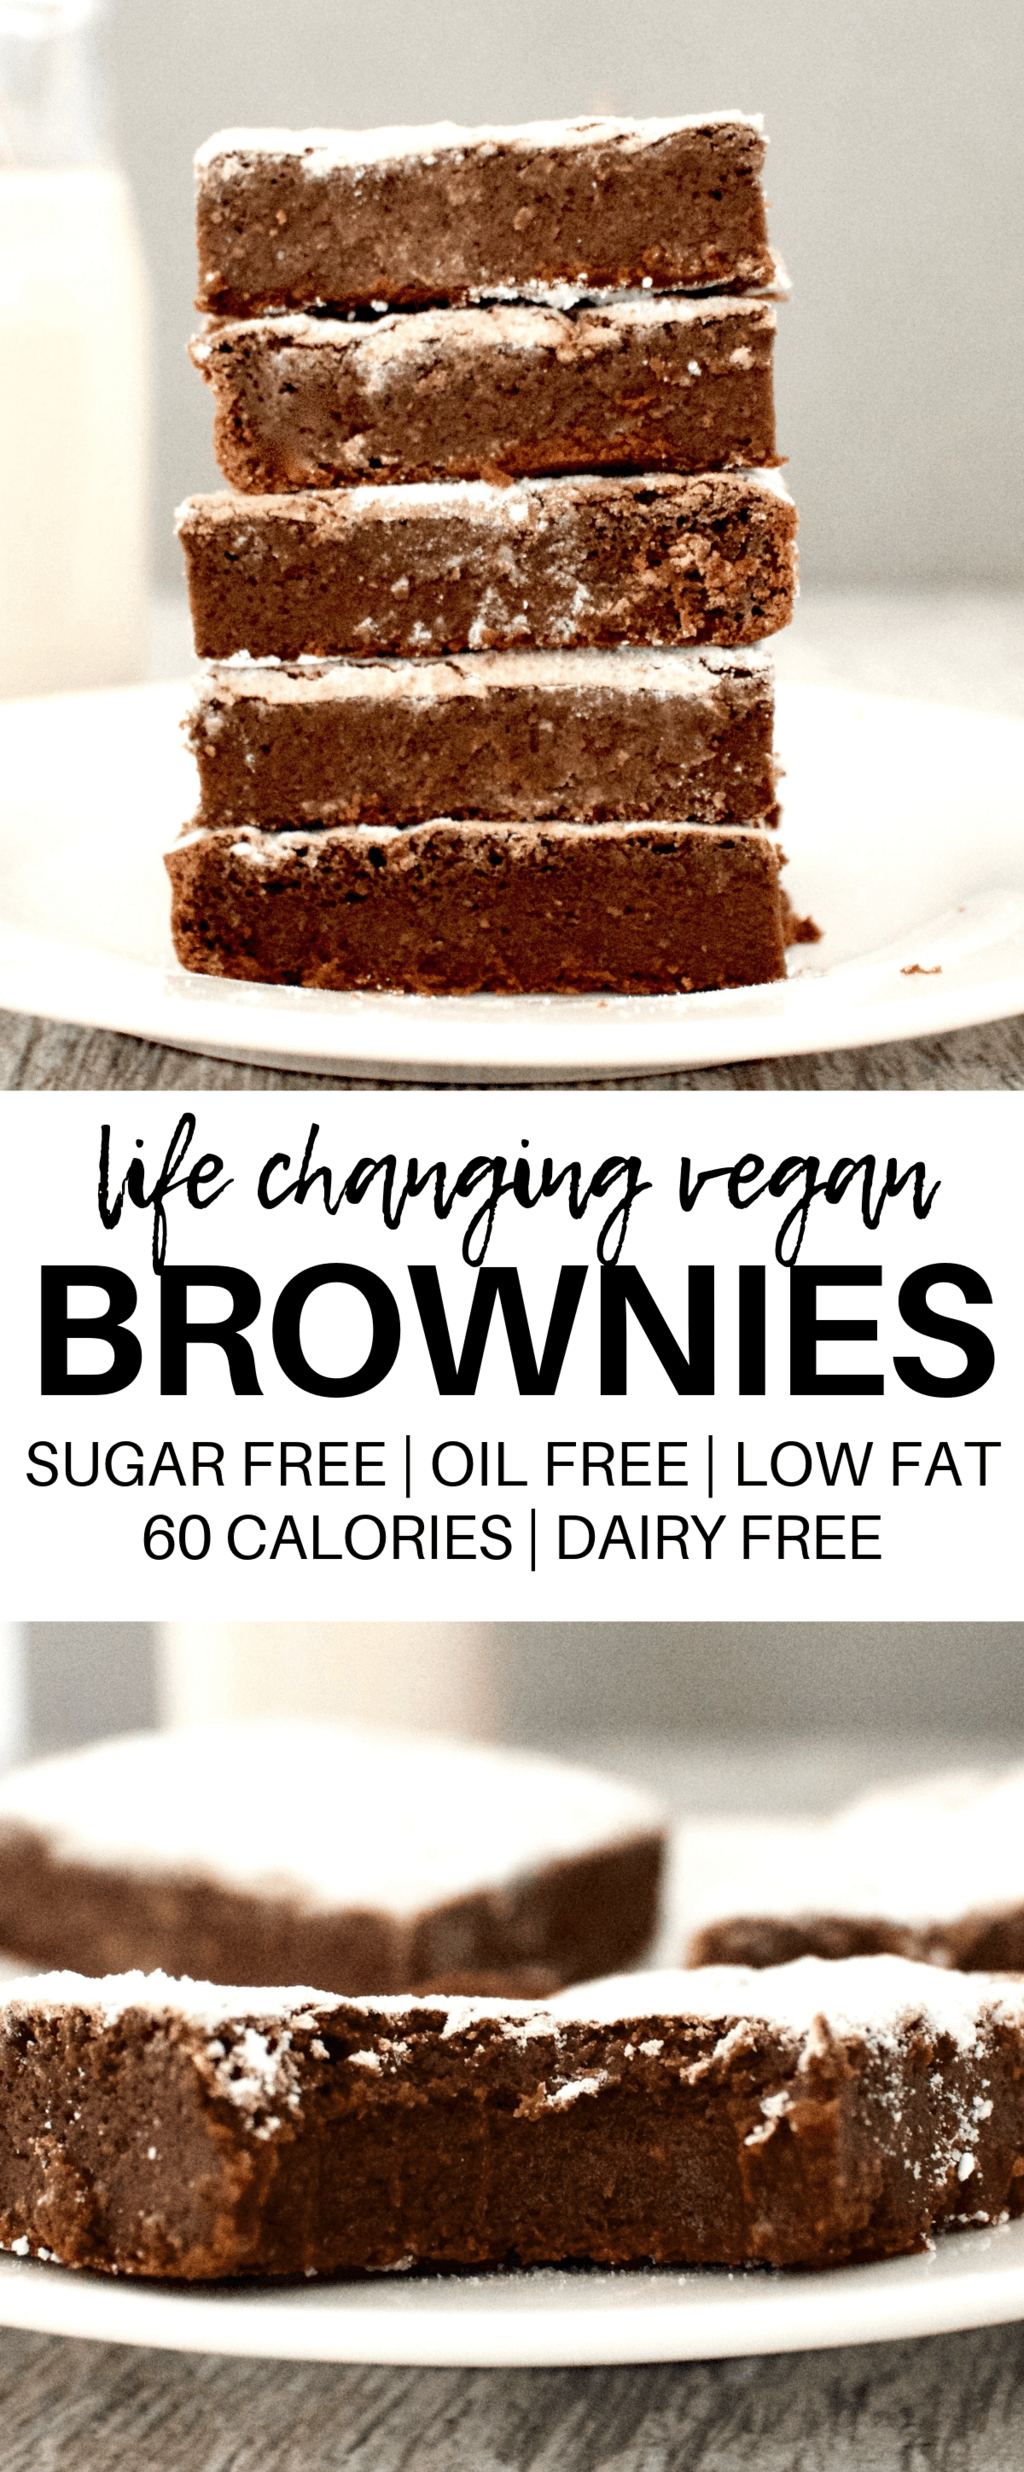 Vegan Fudge Brownies Low Calorie Gluten Free Sugar Free